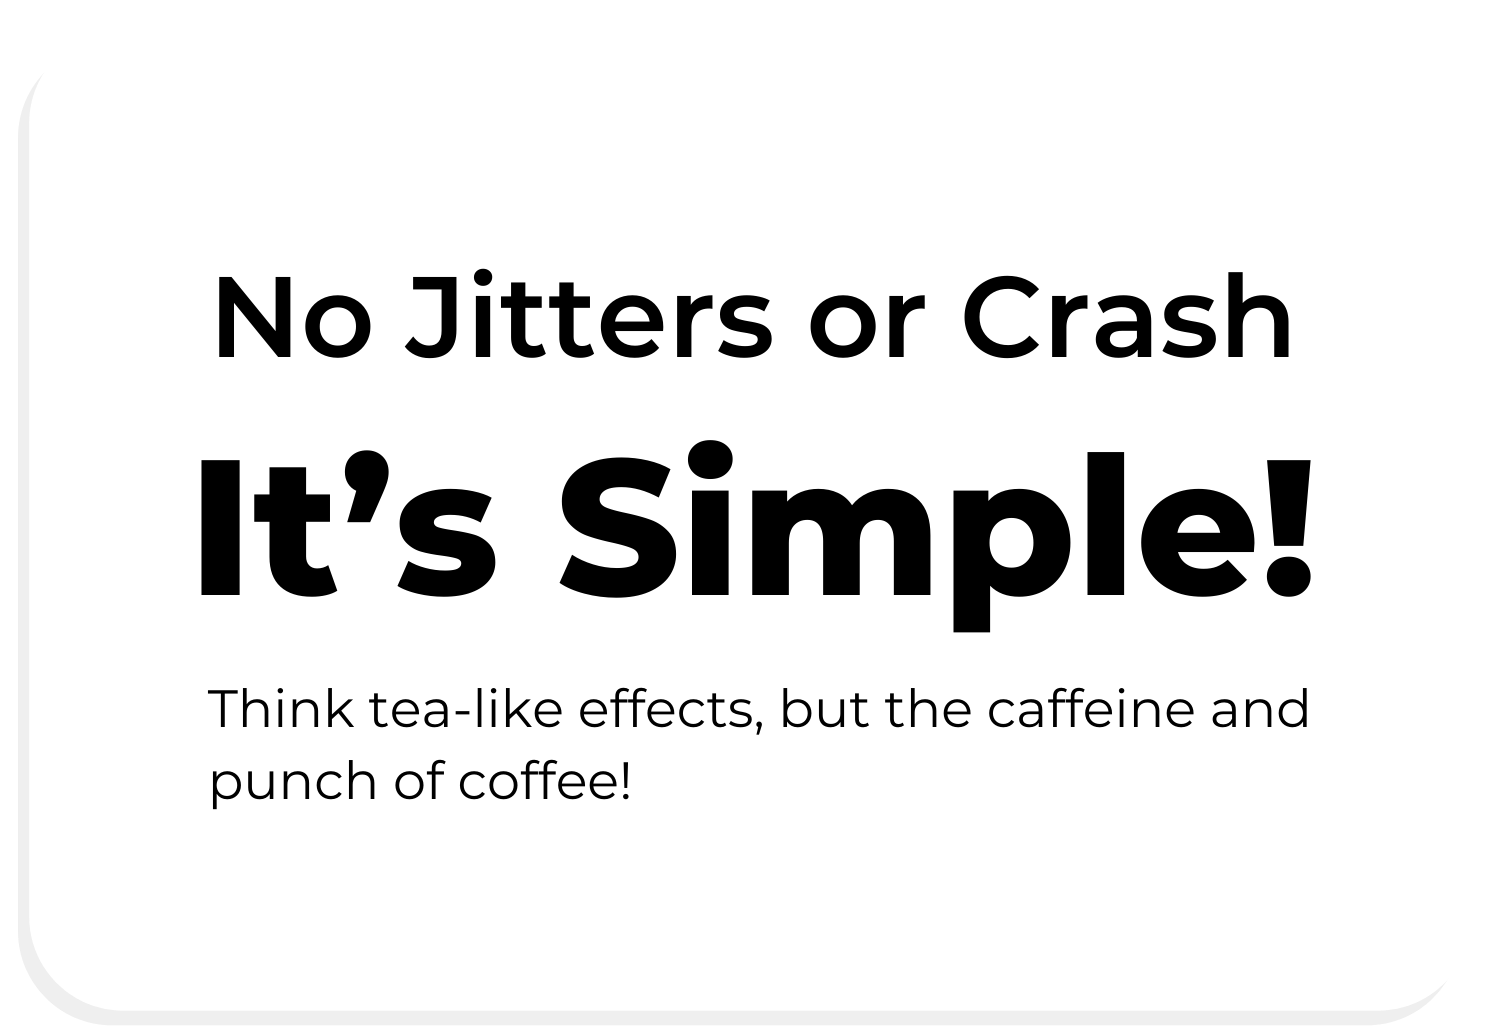 No Jitters or Crash. It's Simple! Think tea-lie effects, but the caffeine and punch of coffee!